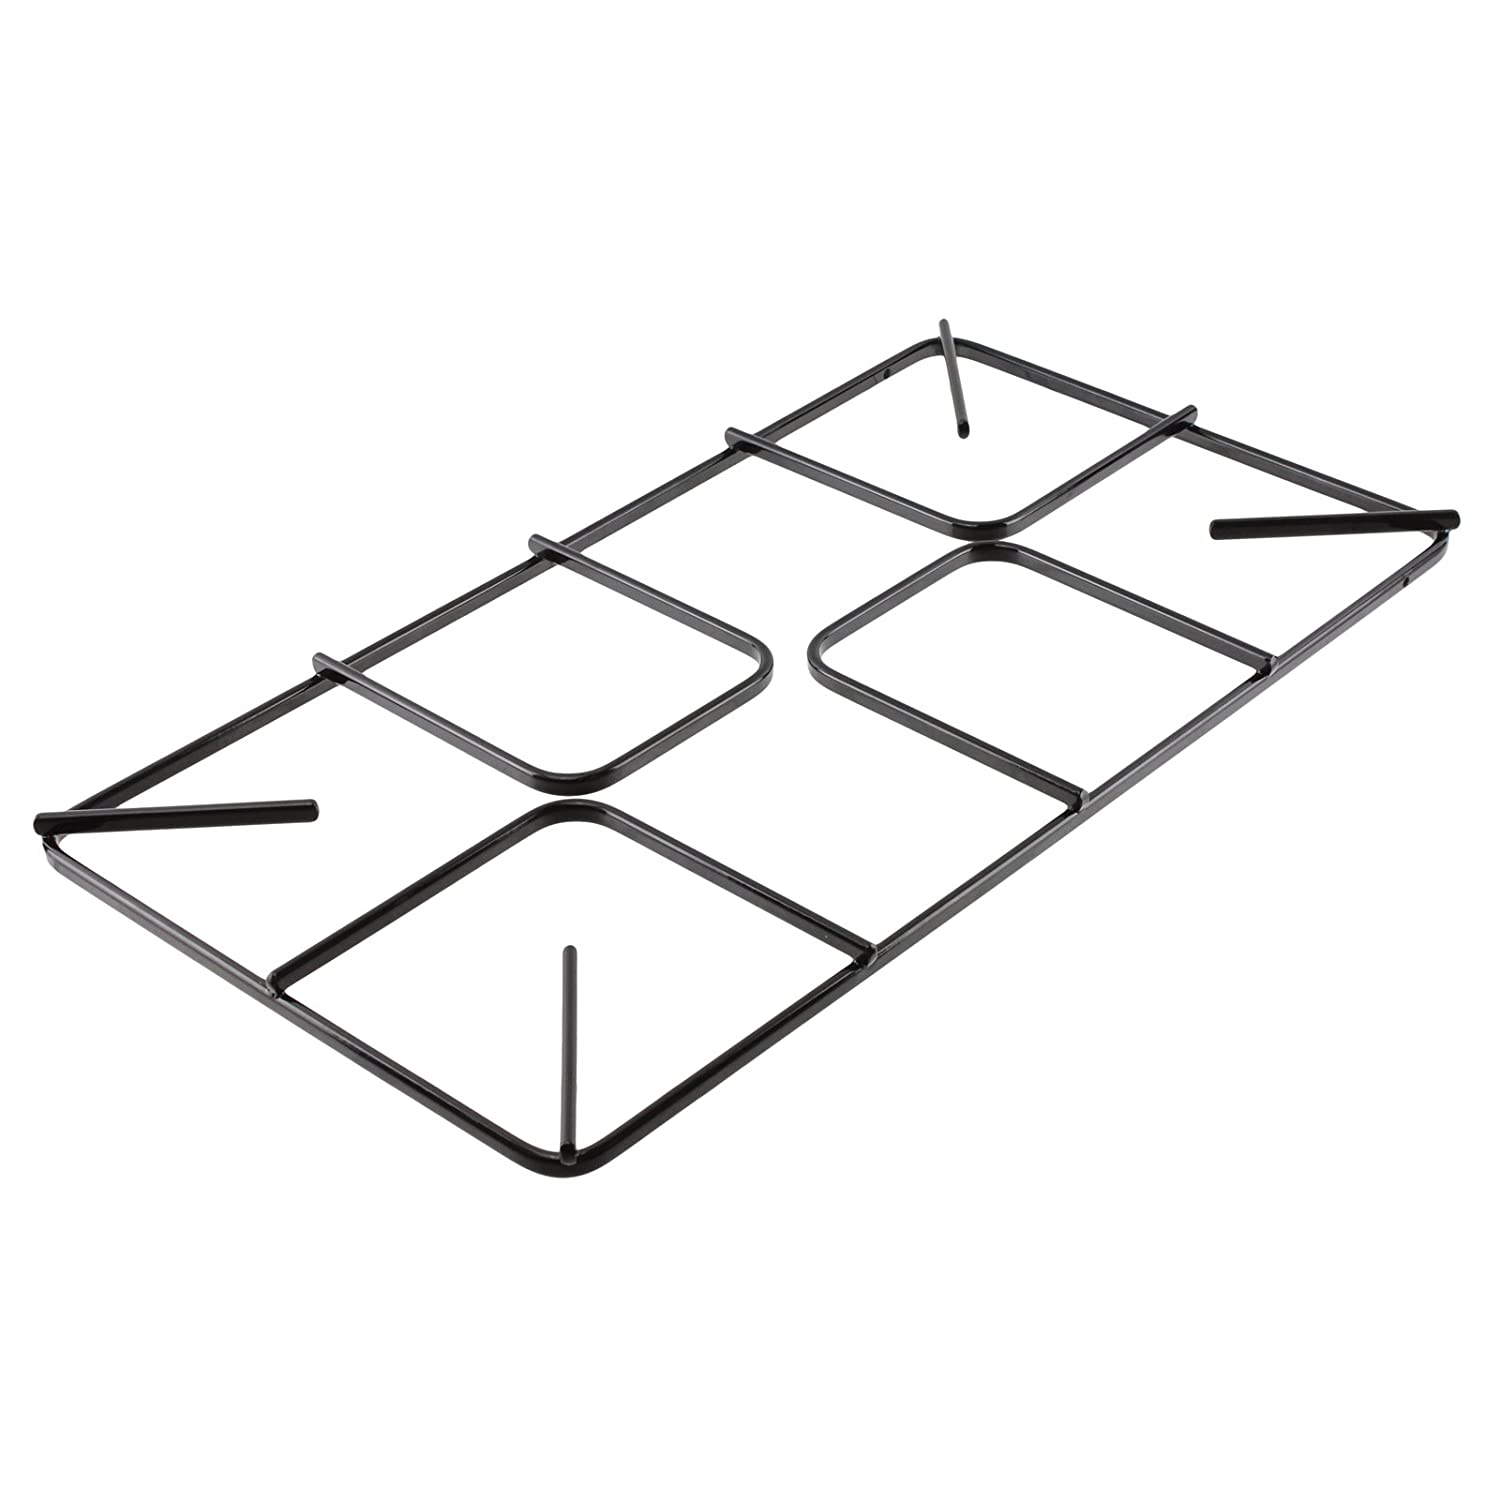 SPARES2GO Flat Gas Hob Pan Support Grid for Hotpoint Oven Cookers (455mm x 250mm, Large)